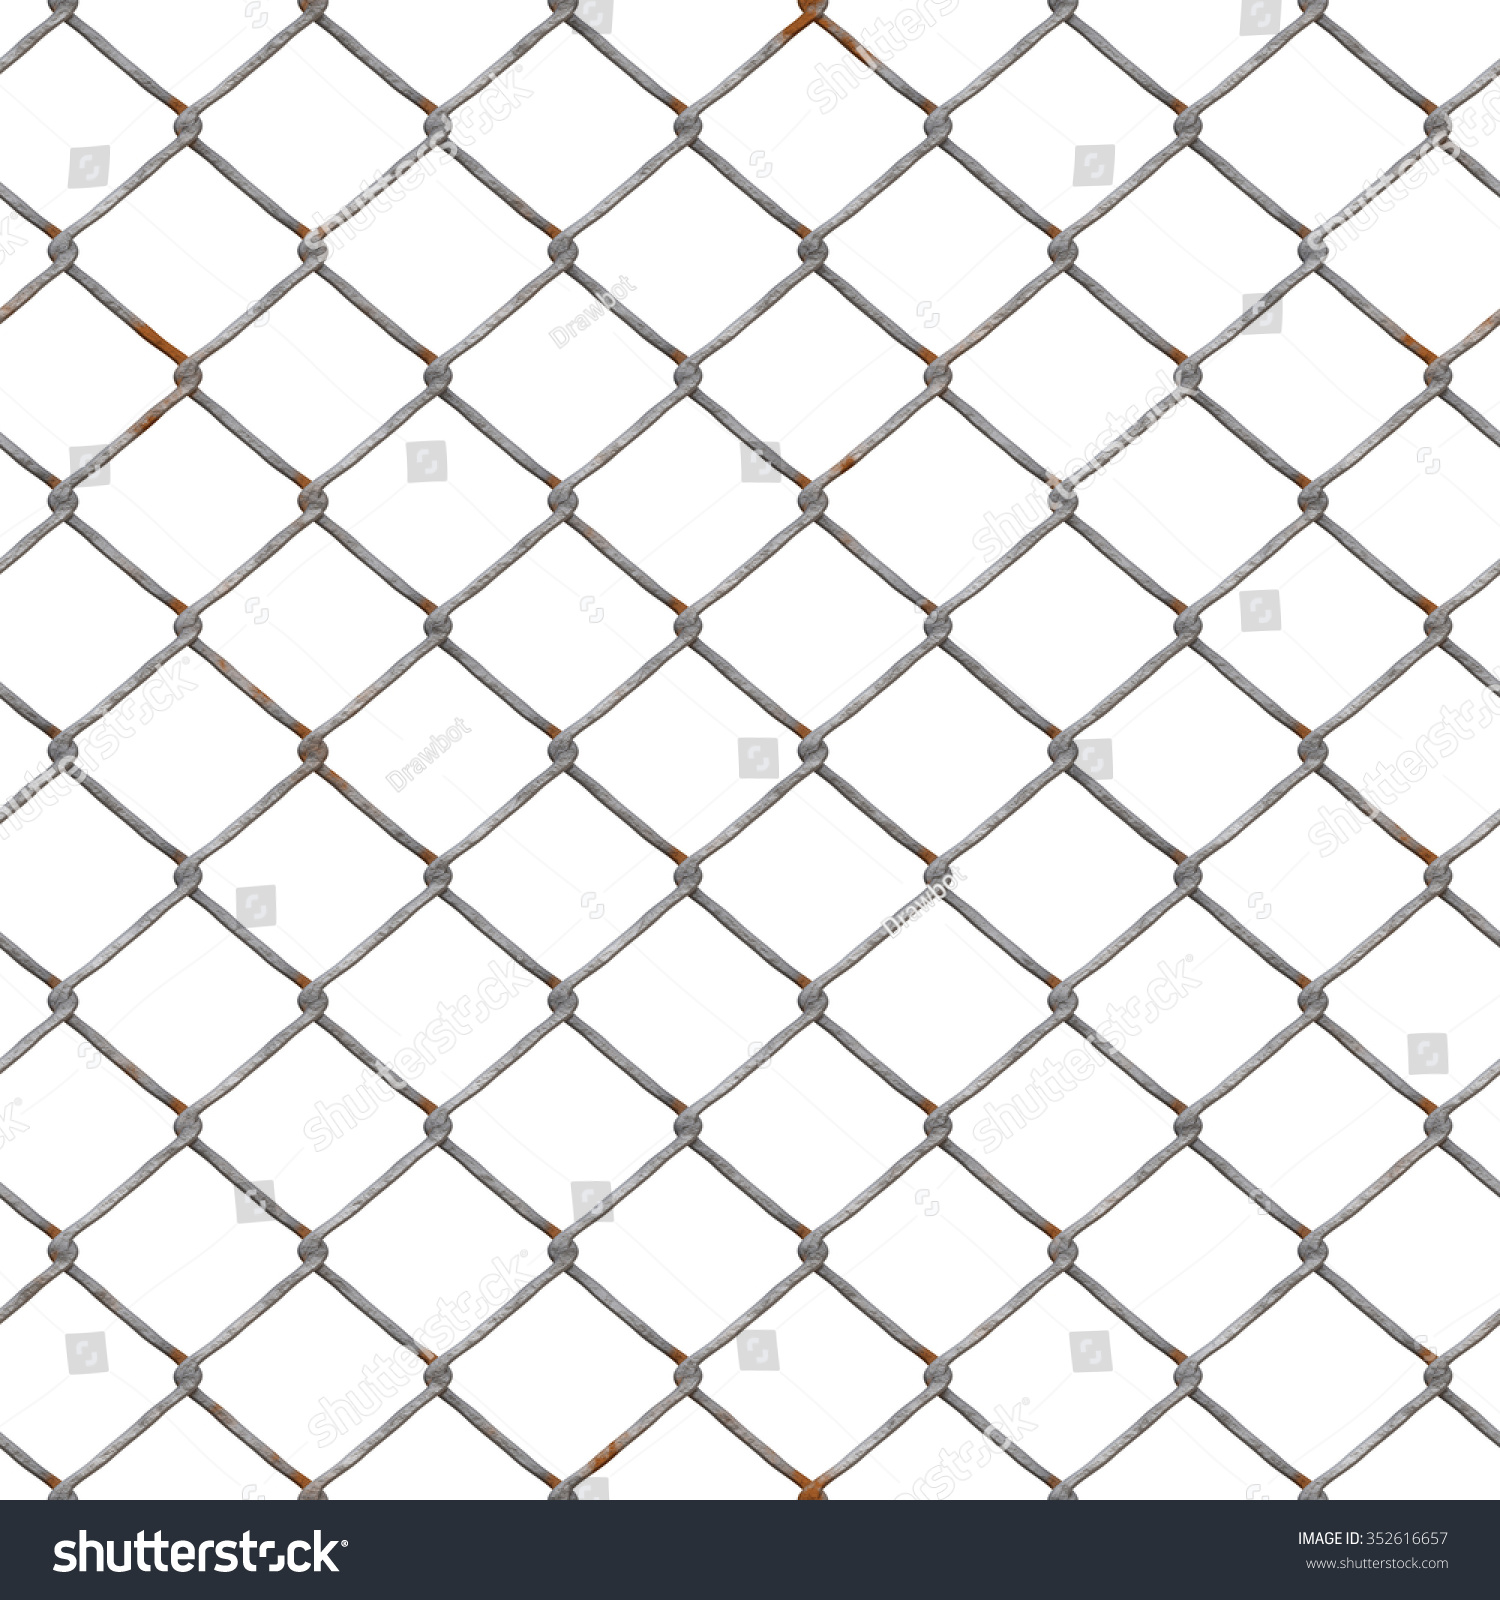 chain link fence texture seamless. Rusty Chain Link / Wire Mesh Fence Texture Background (Tiles Seamless, Seamless